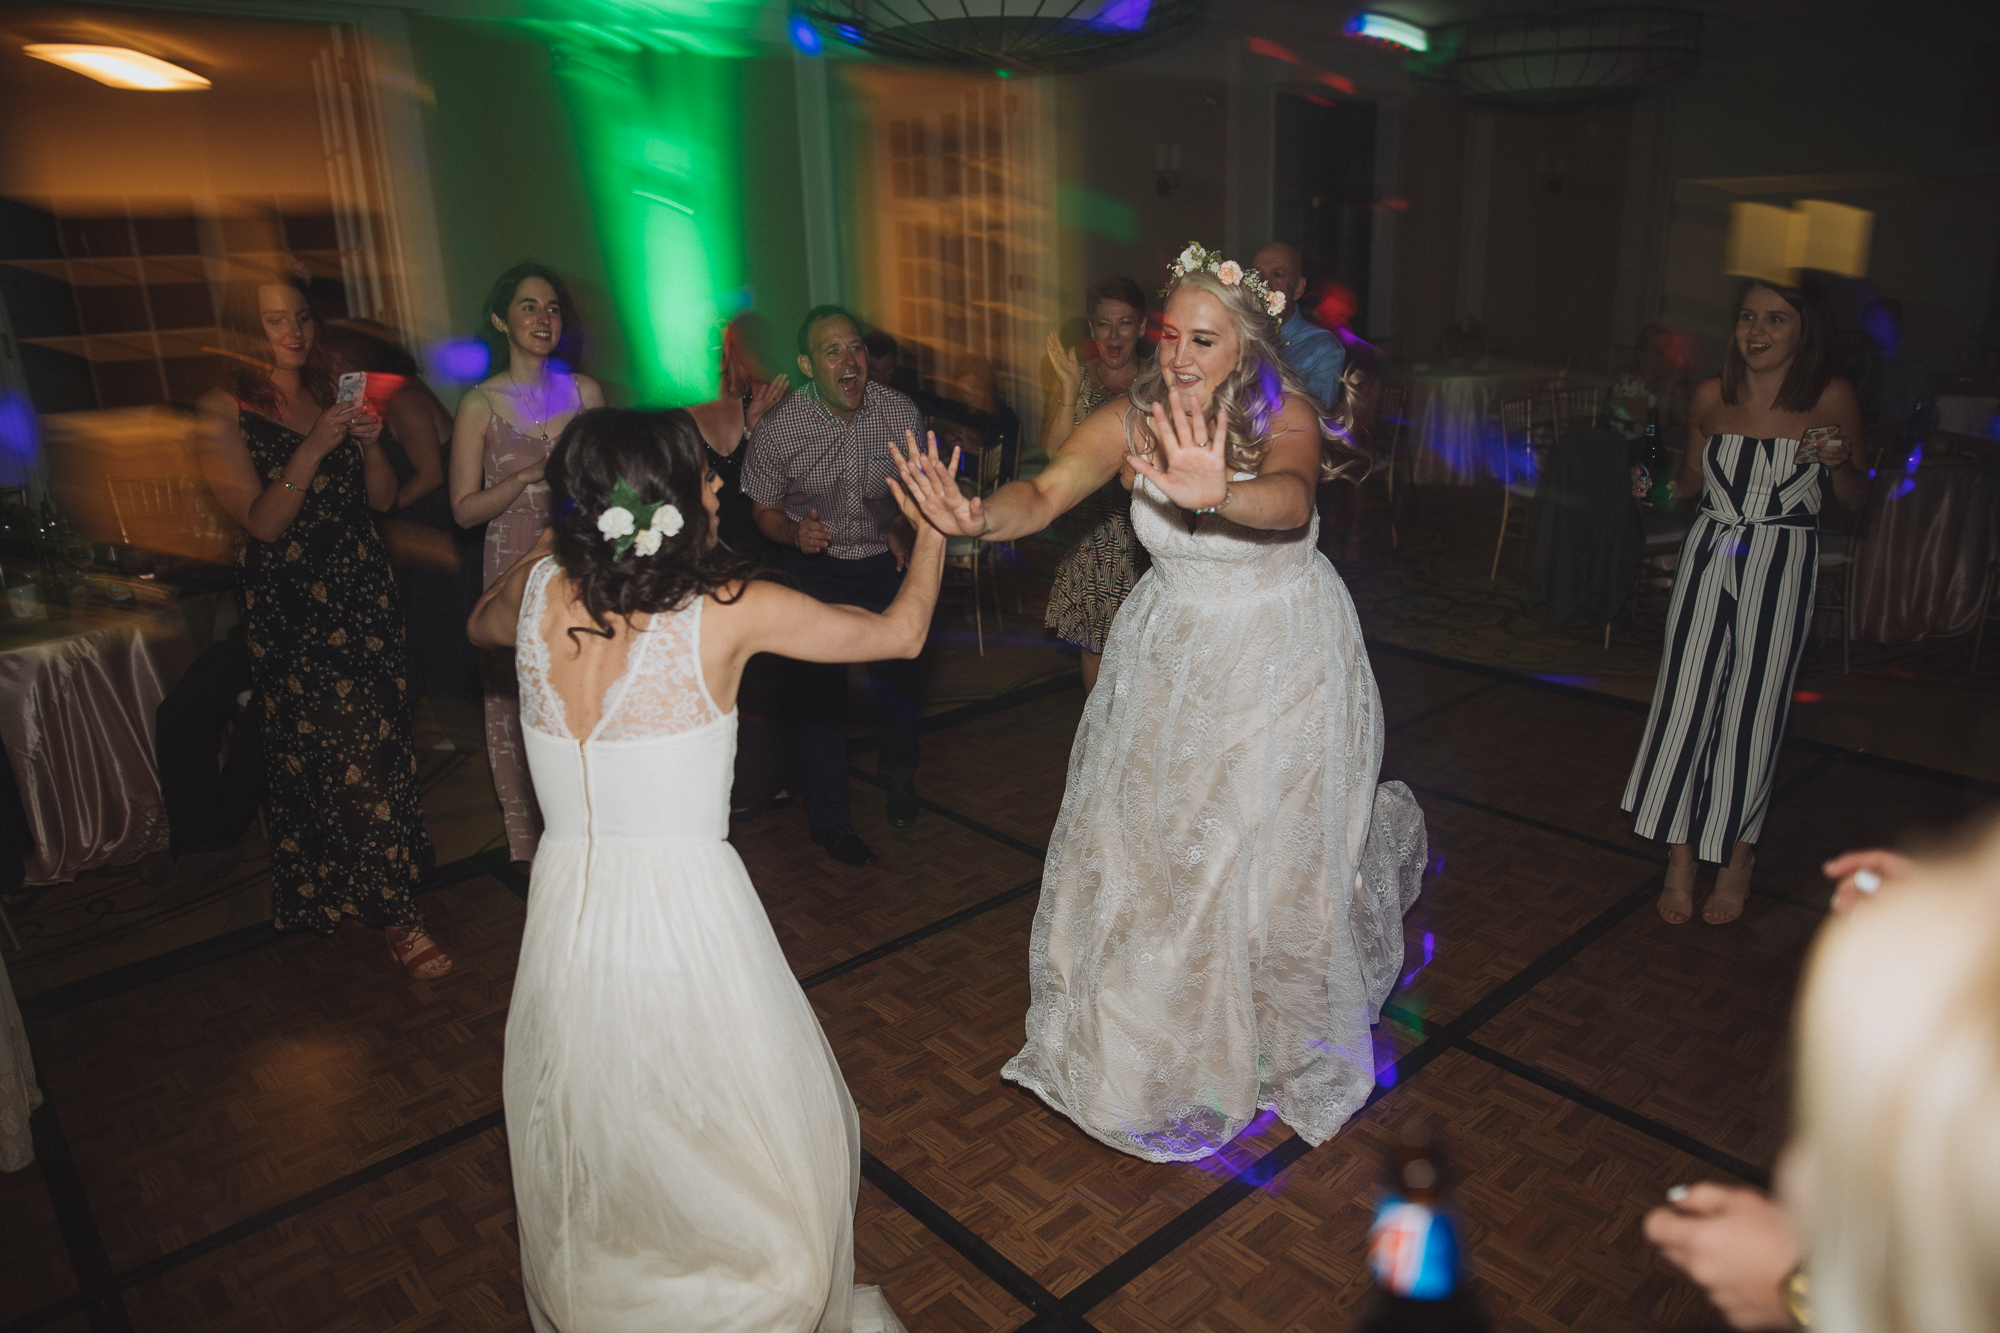 Kelsey and best friend dancing